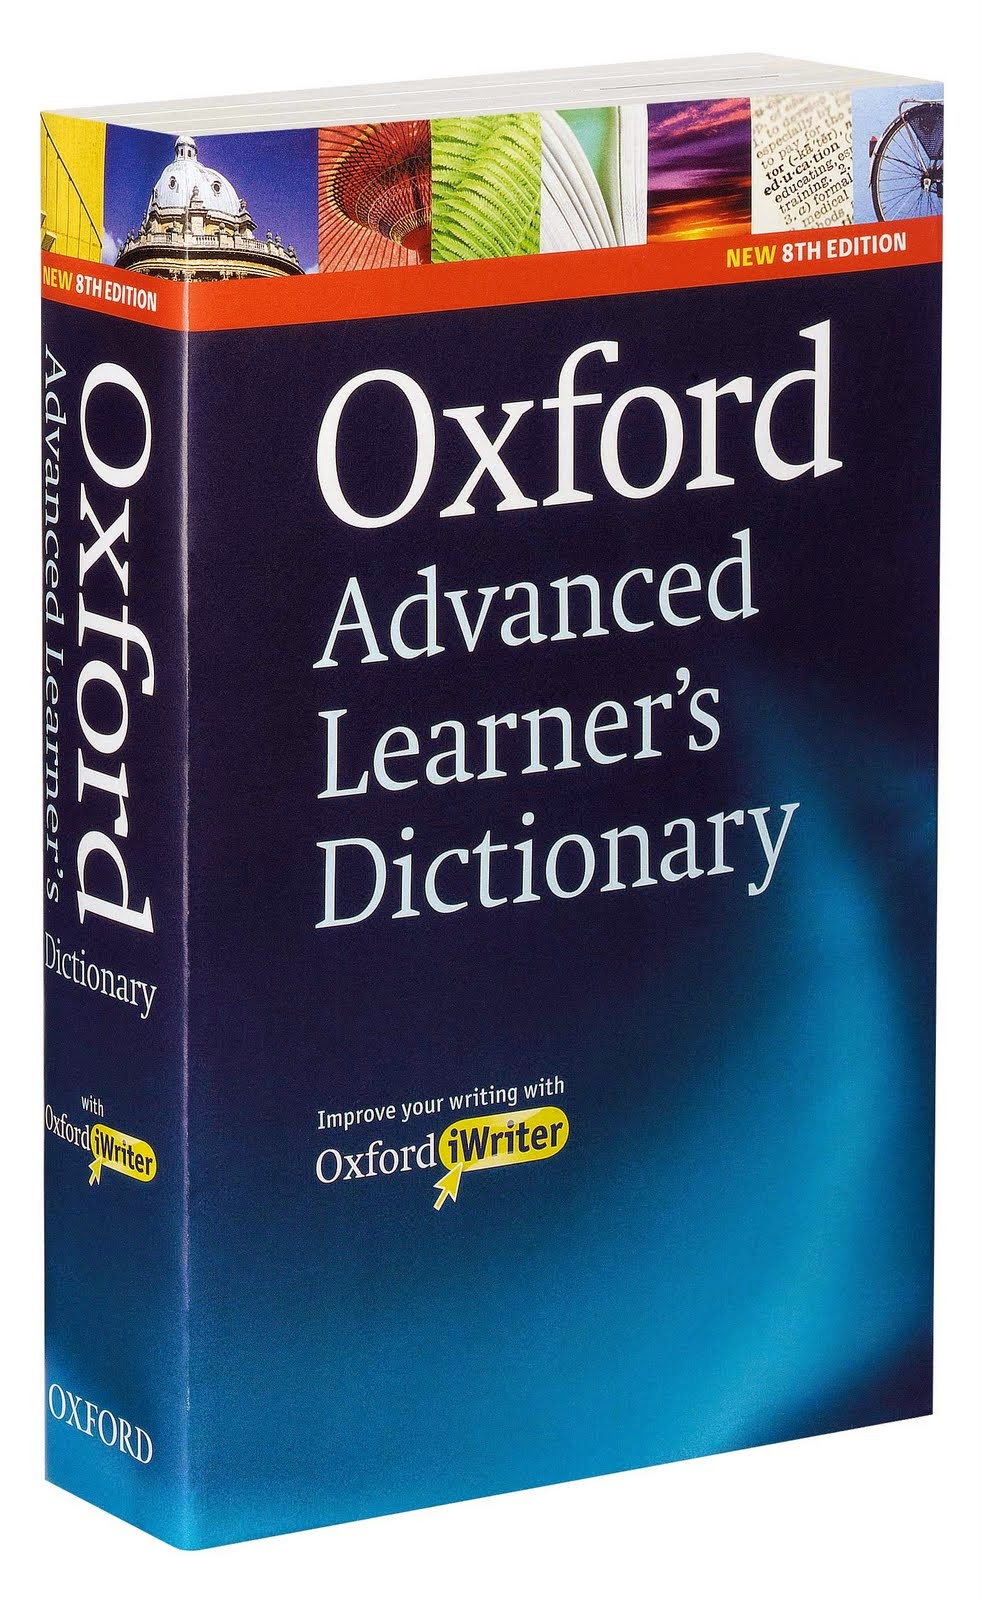 Monolingual dictionary